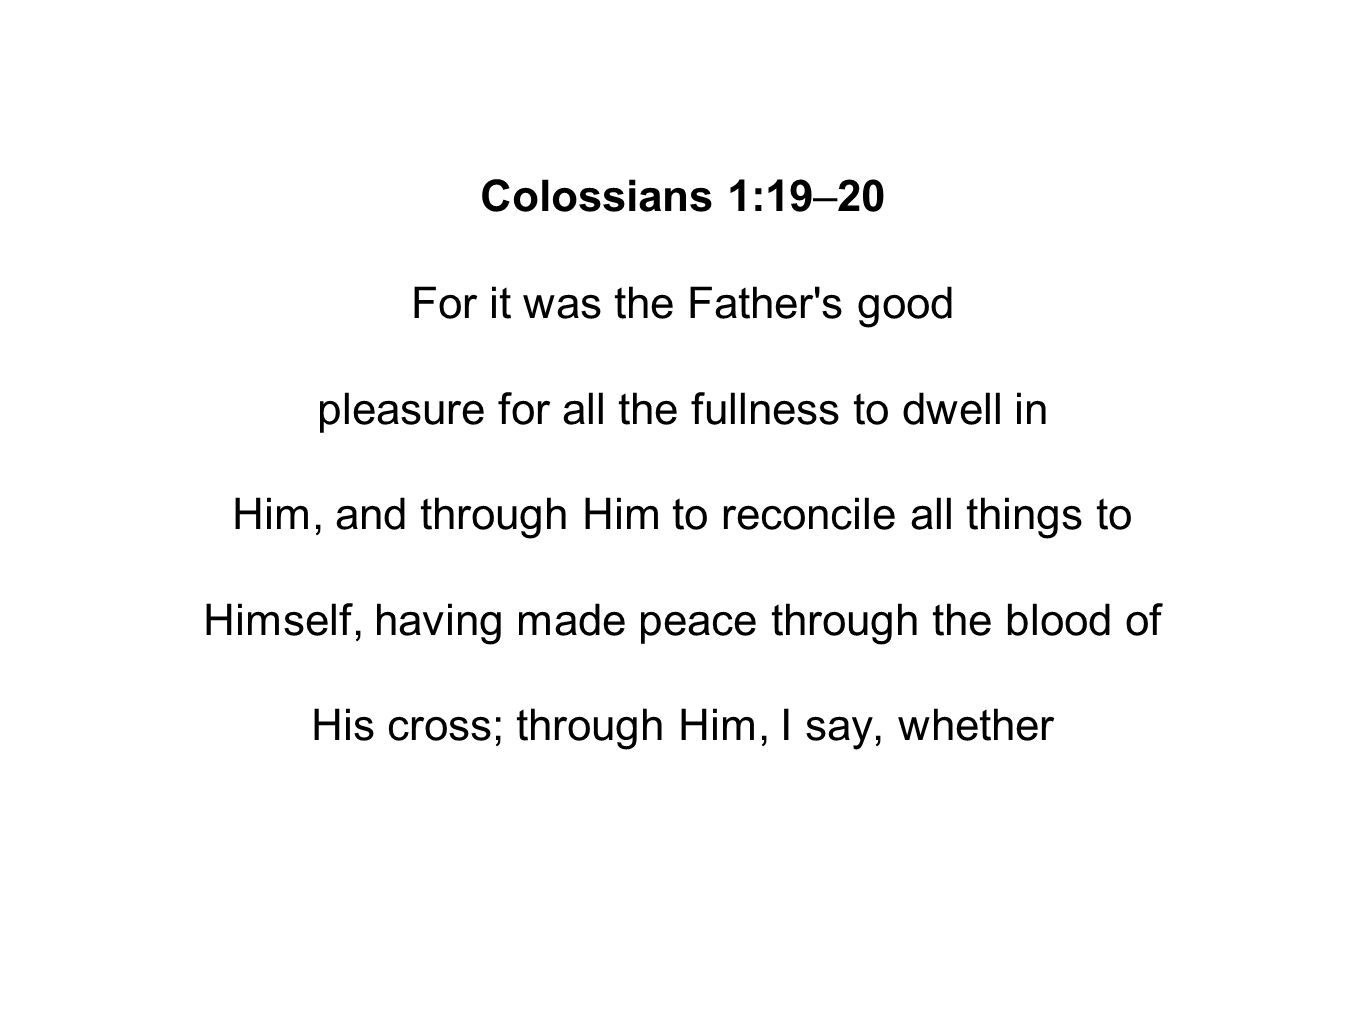 Colossians 1:19–20 For it was the Father s good pleasure for all the fullness to dwell in Him, and through Him to reconcile all things to Himself, having made peace through the blood of His cross; through Him, I say, whether